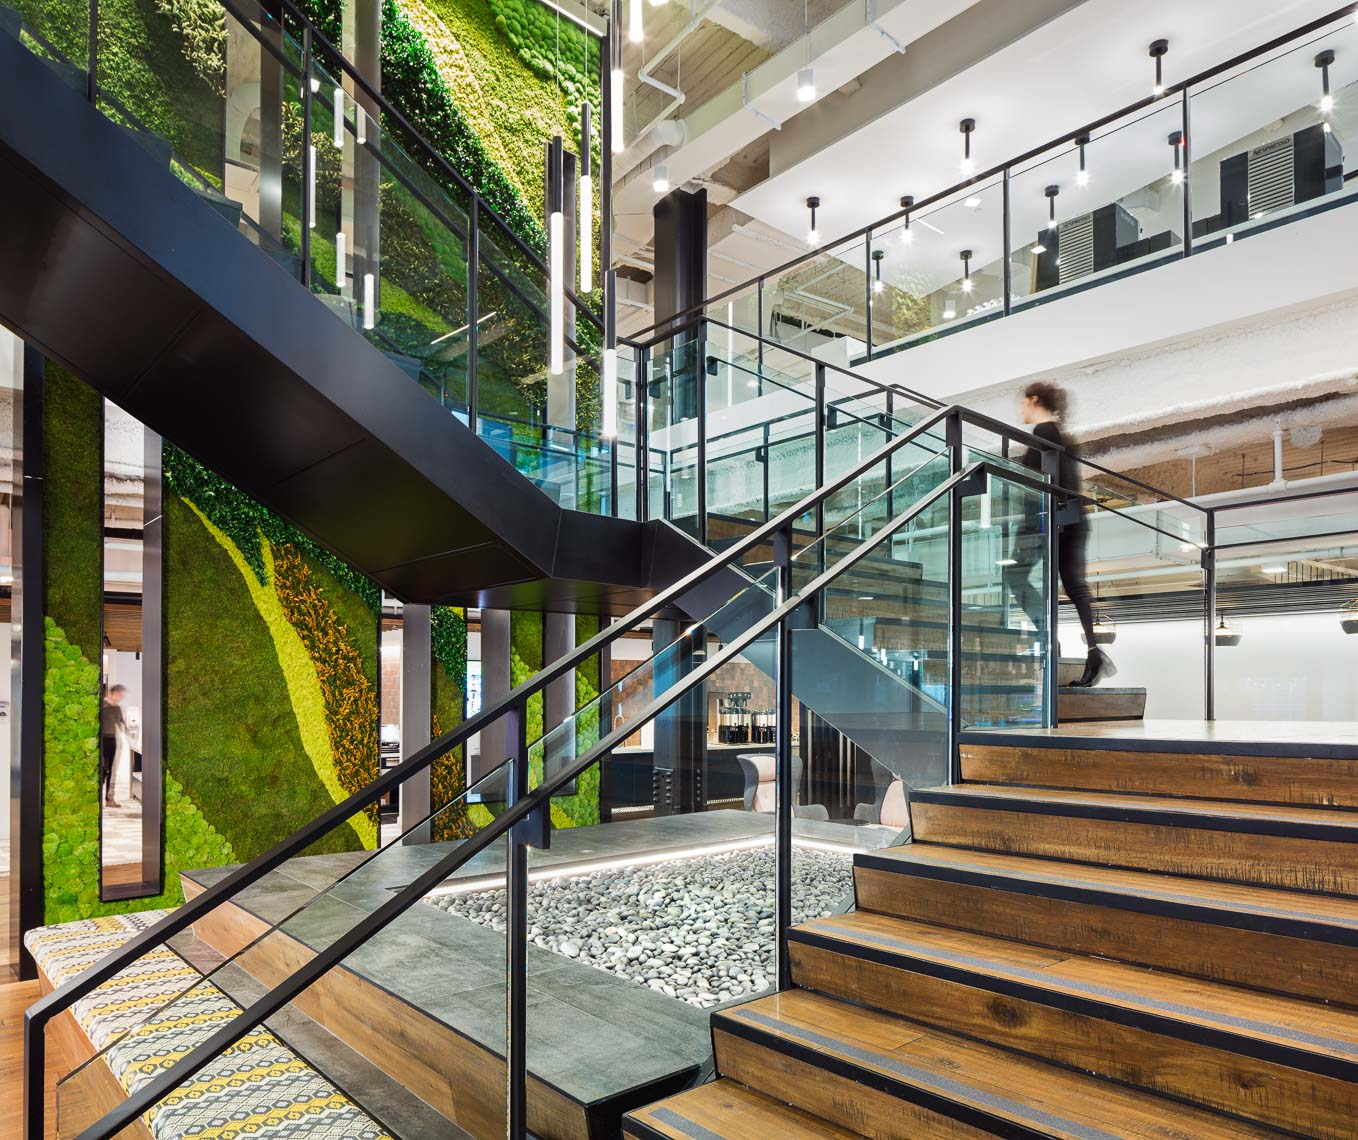 A large wraparound central staircase with green wall panels inside a modern office